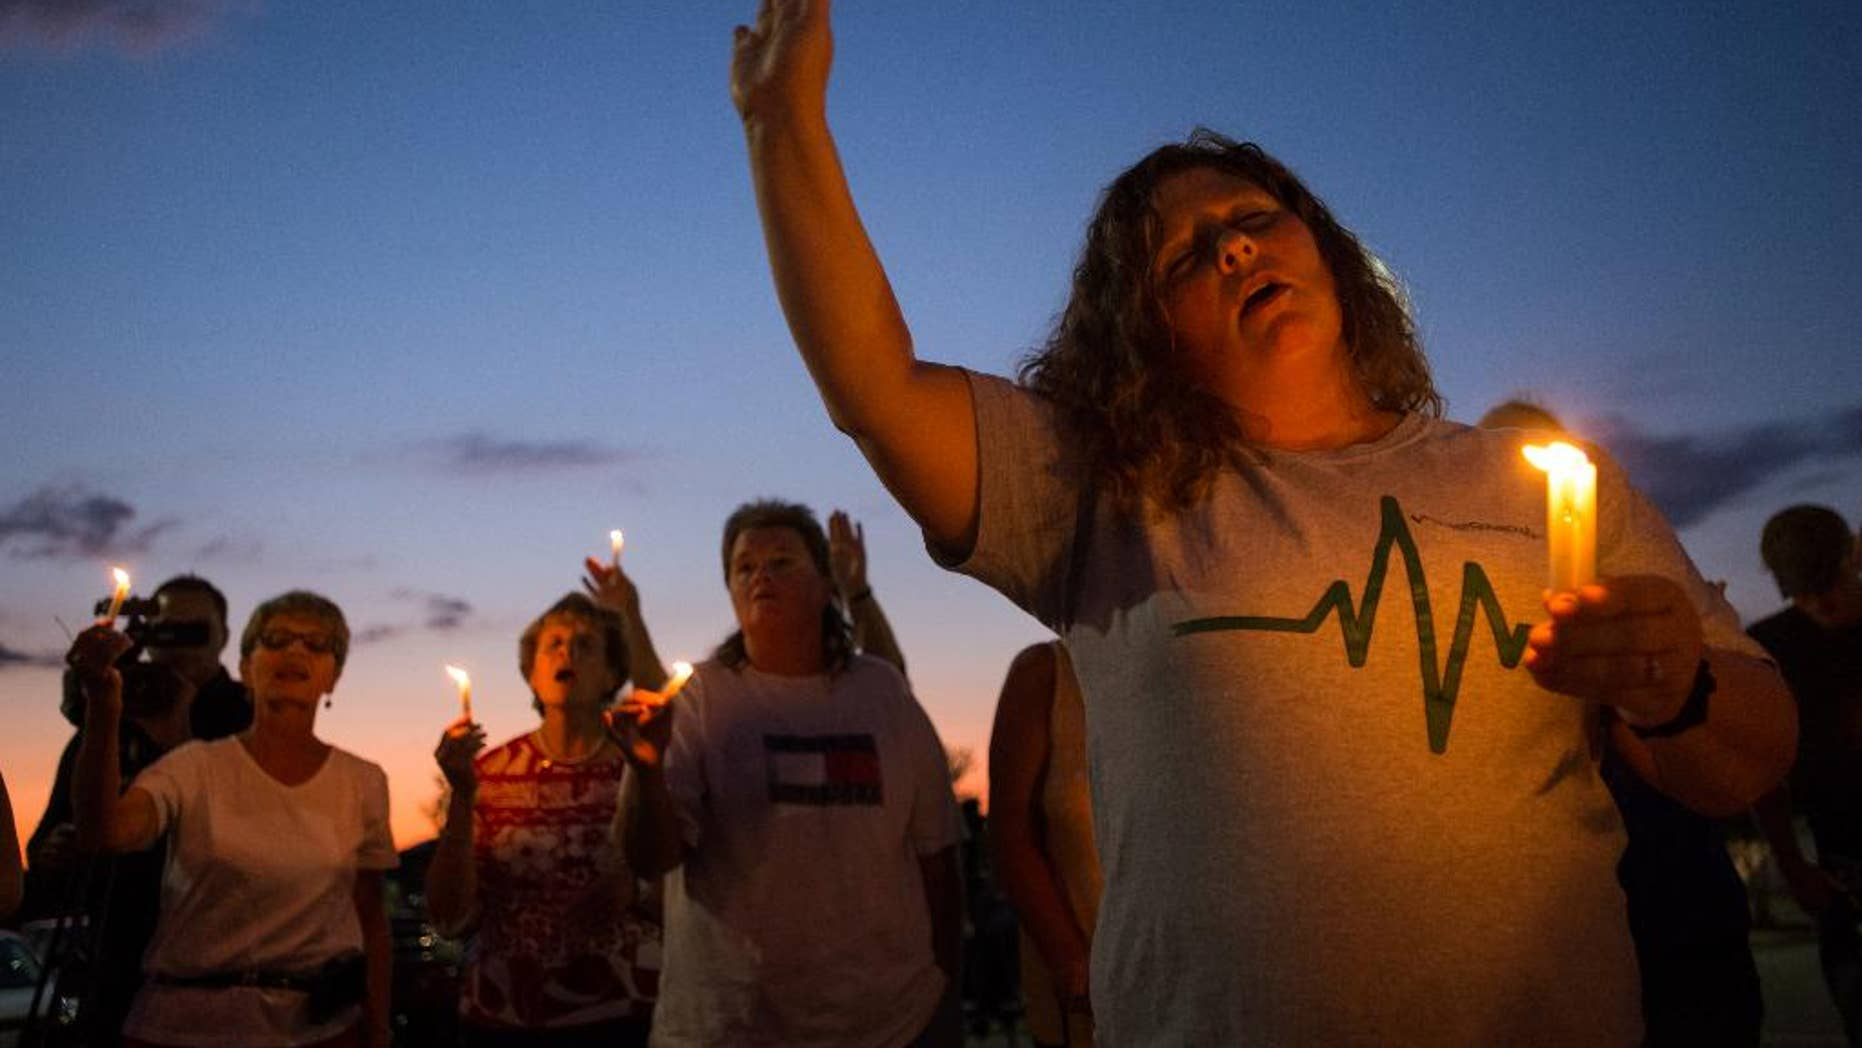 Stephanie Gray attends a vigil for journalists Alison Parker and Adam Ward who were killed during a shooting at Bridgewater Plaza in Moneta, Va., Wednesday, Aug. 26, 2015. Vester Lee Flanagan opened fire during a live on-air interview for WDBJ, killing the two journalists Wednesday. (Autumn Parry/The News & Advance via AP)